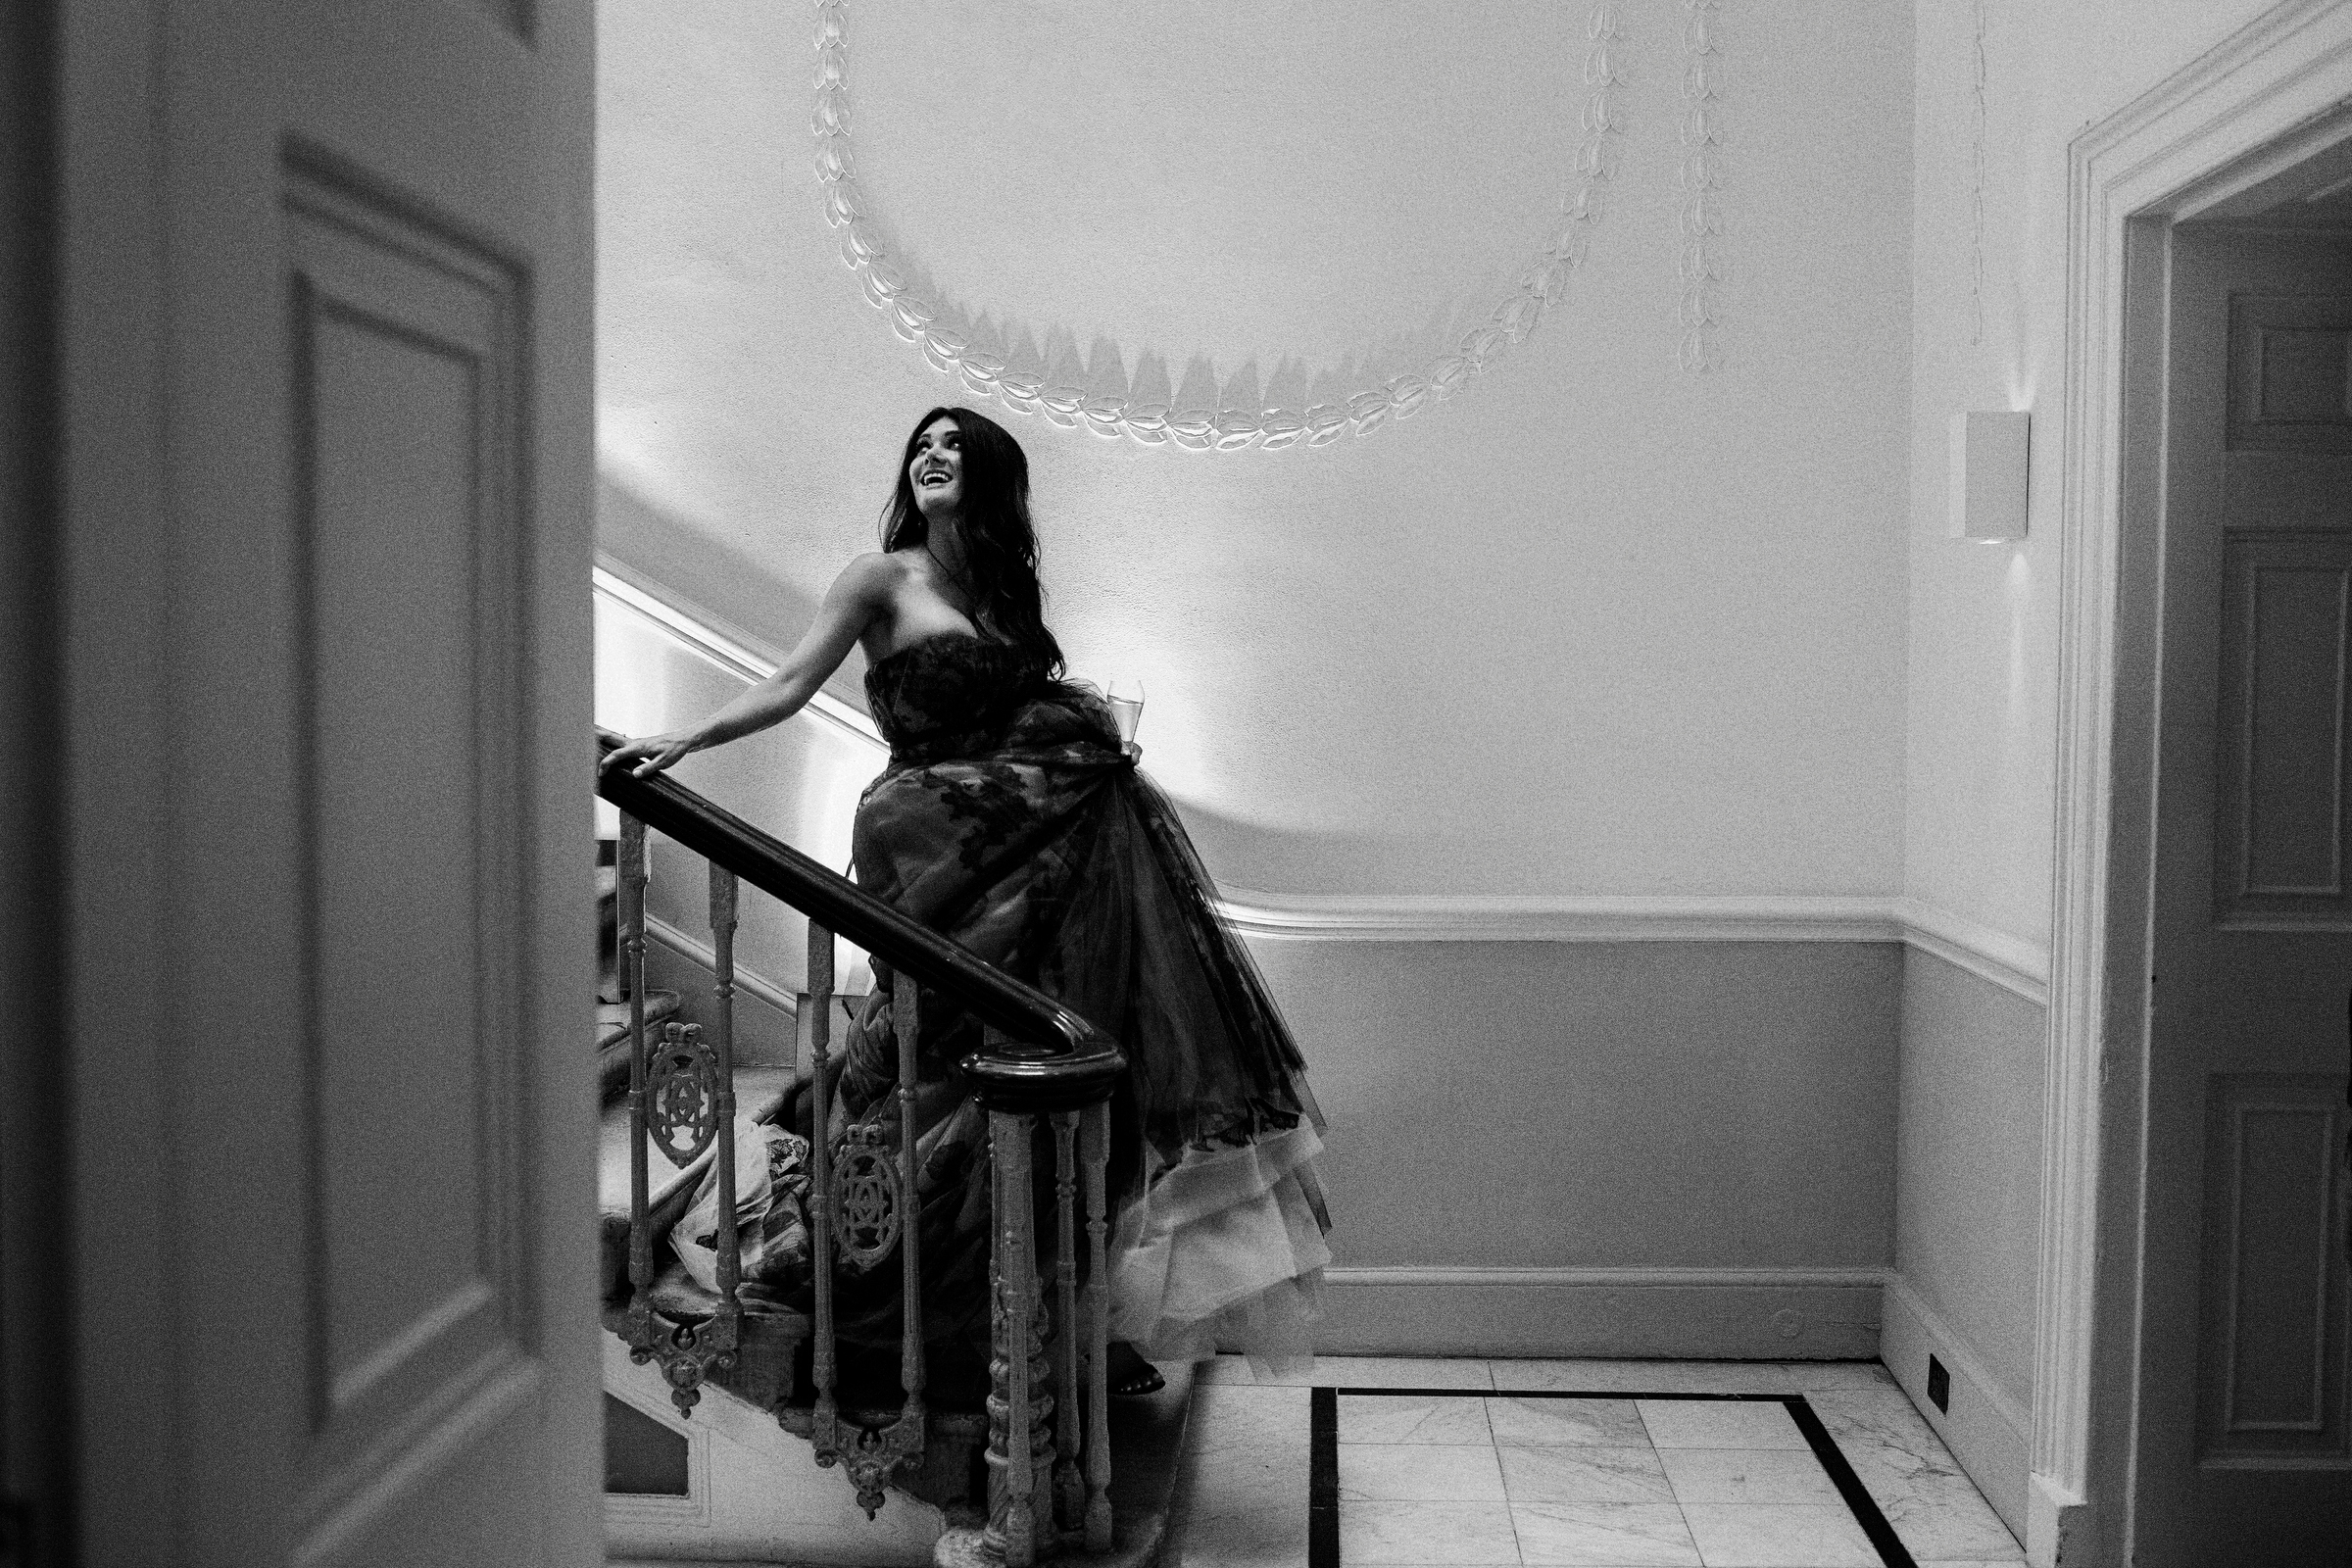 Bride descending stairs by Jeff Ascough